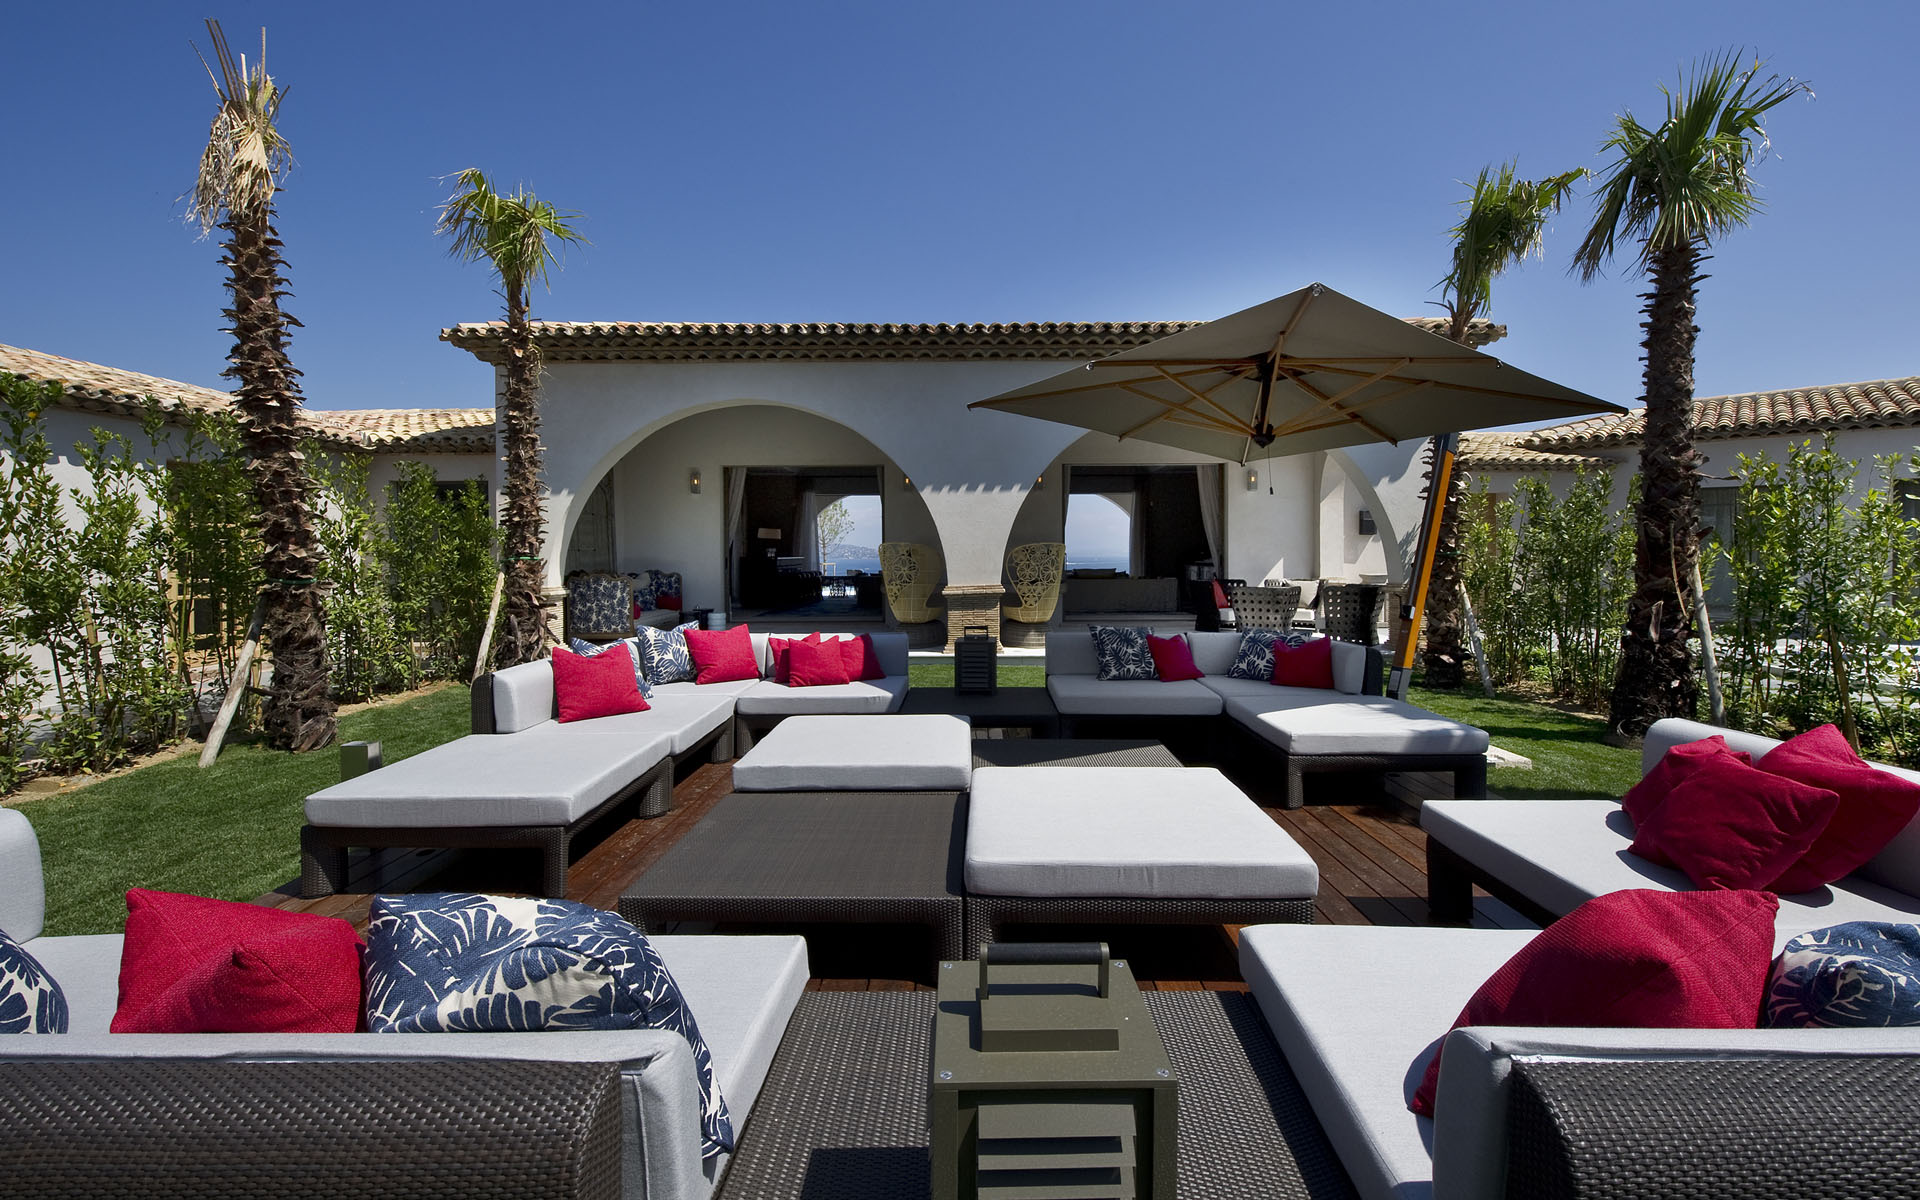 http://cdn.home-designing.com/wp-content/uploads/2013/02/sunlit-outdoor-lounge.jpg